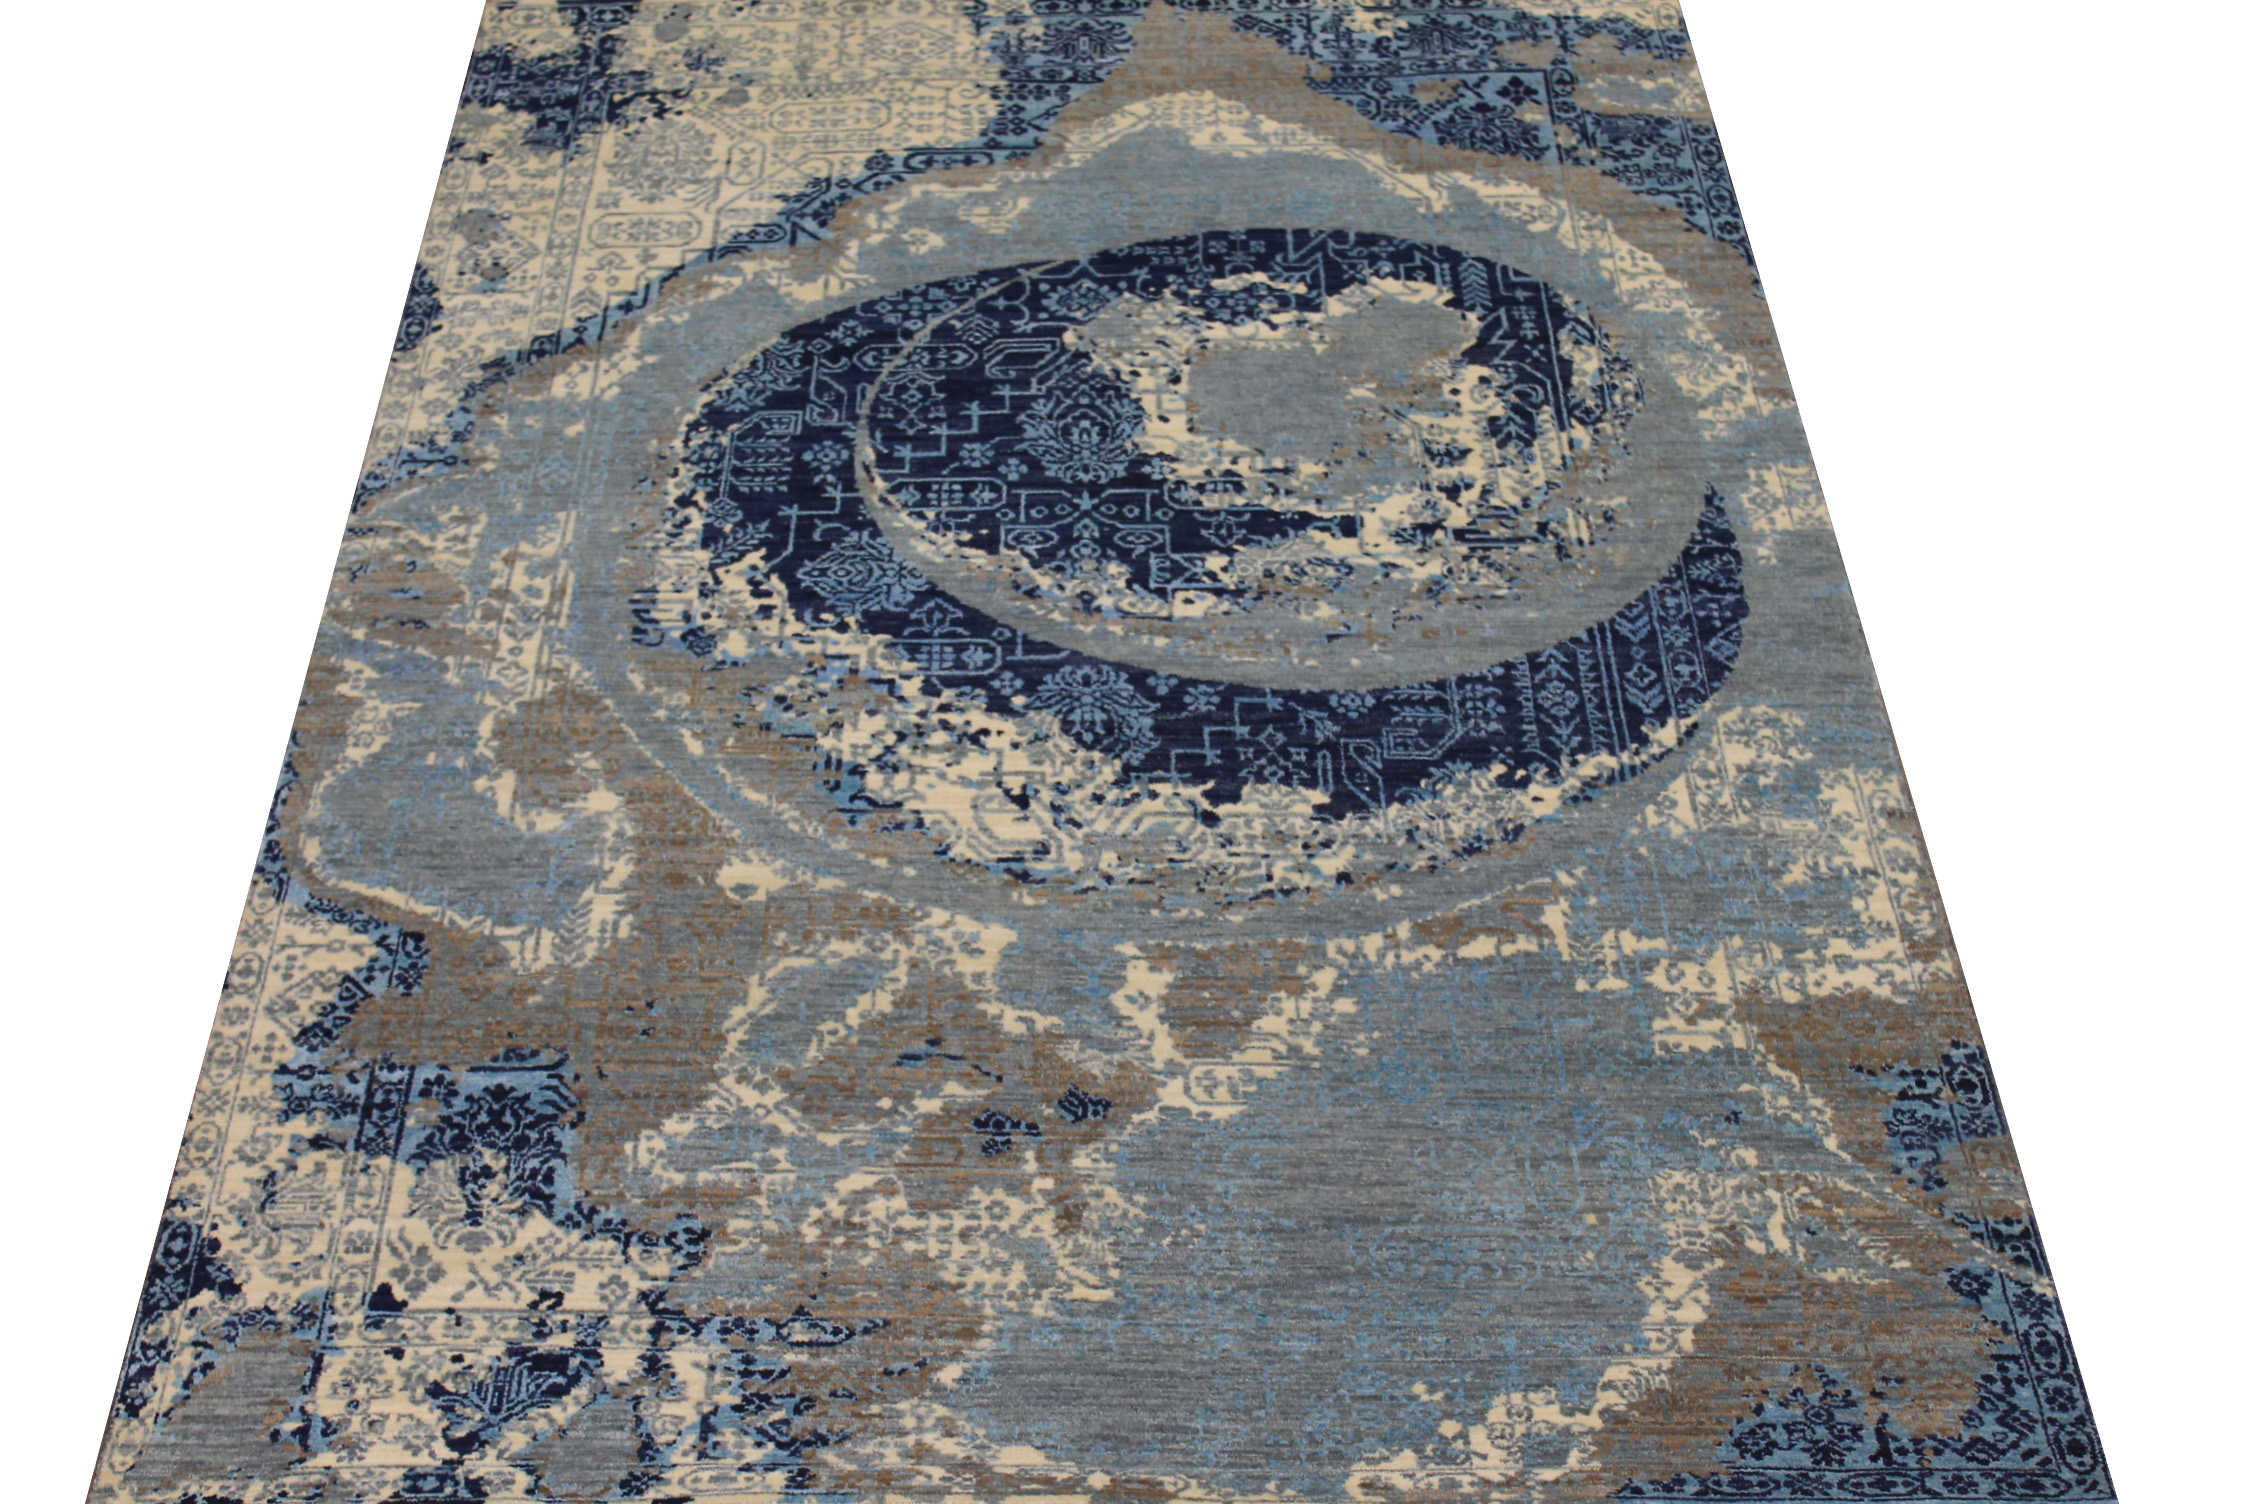 6x9 Transitional Hand Knotted Wool & Viscose Area Rug - MR024595